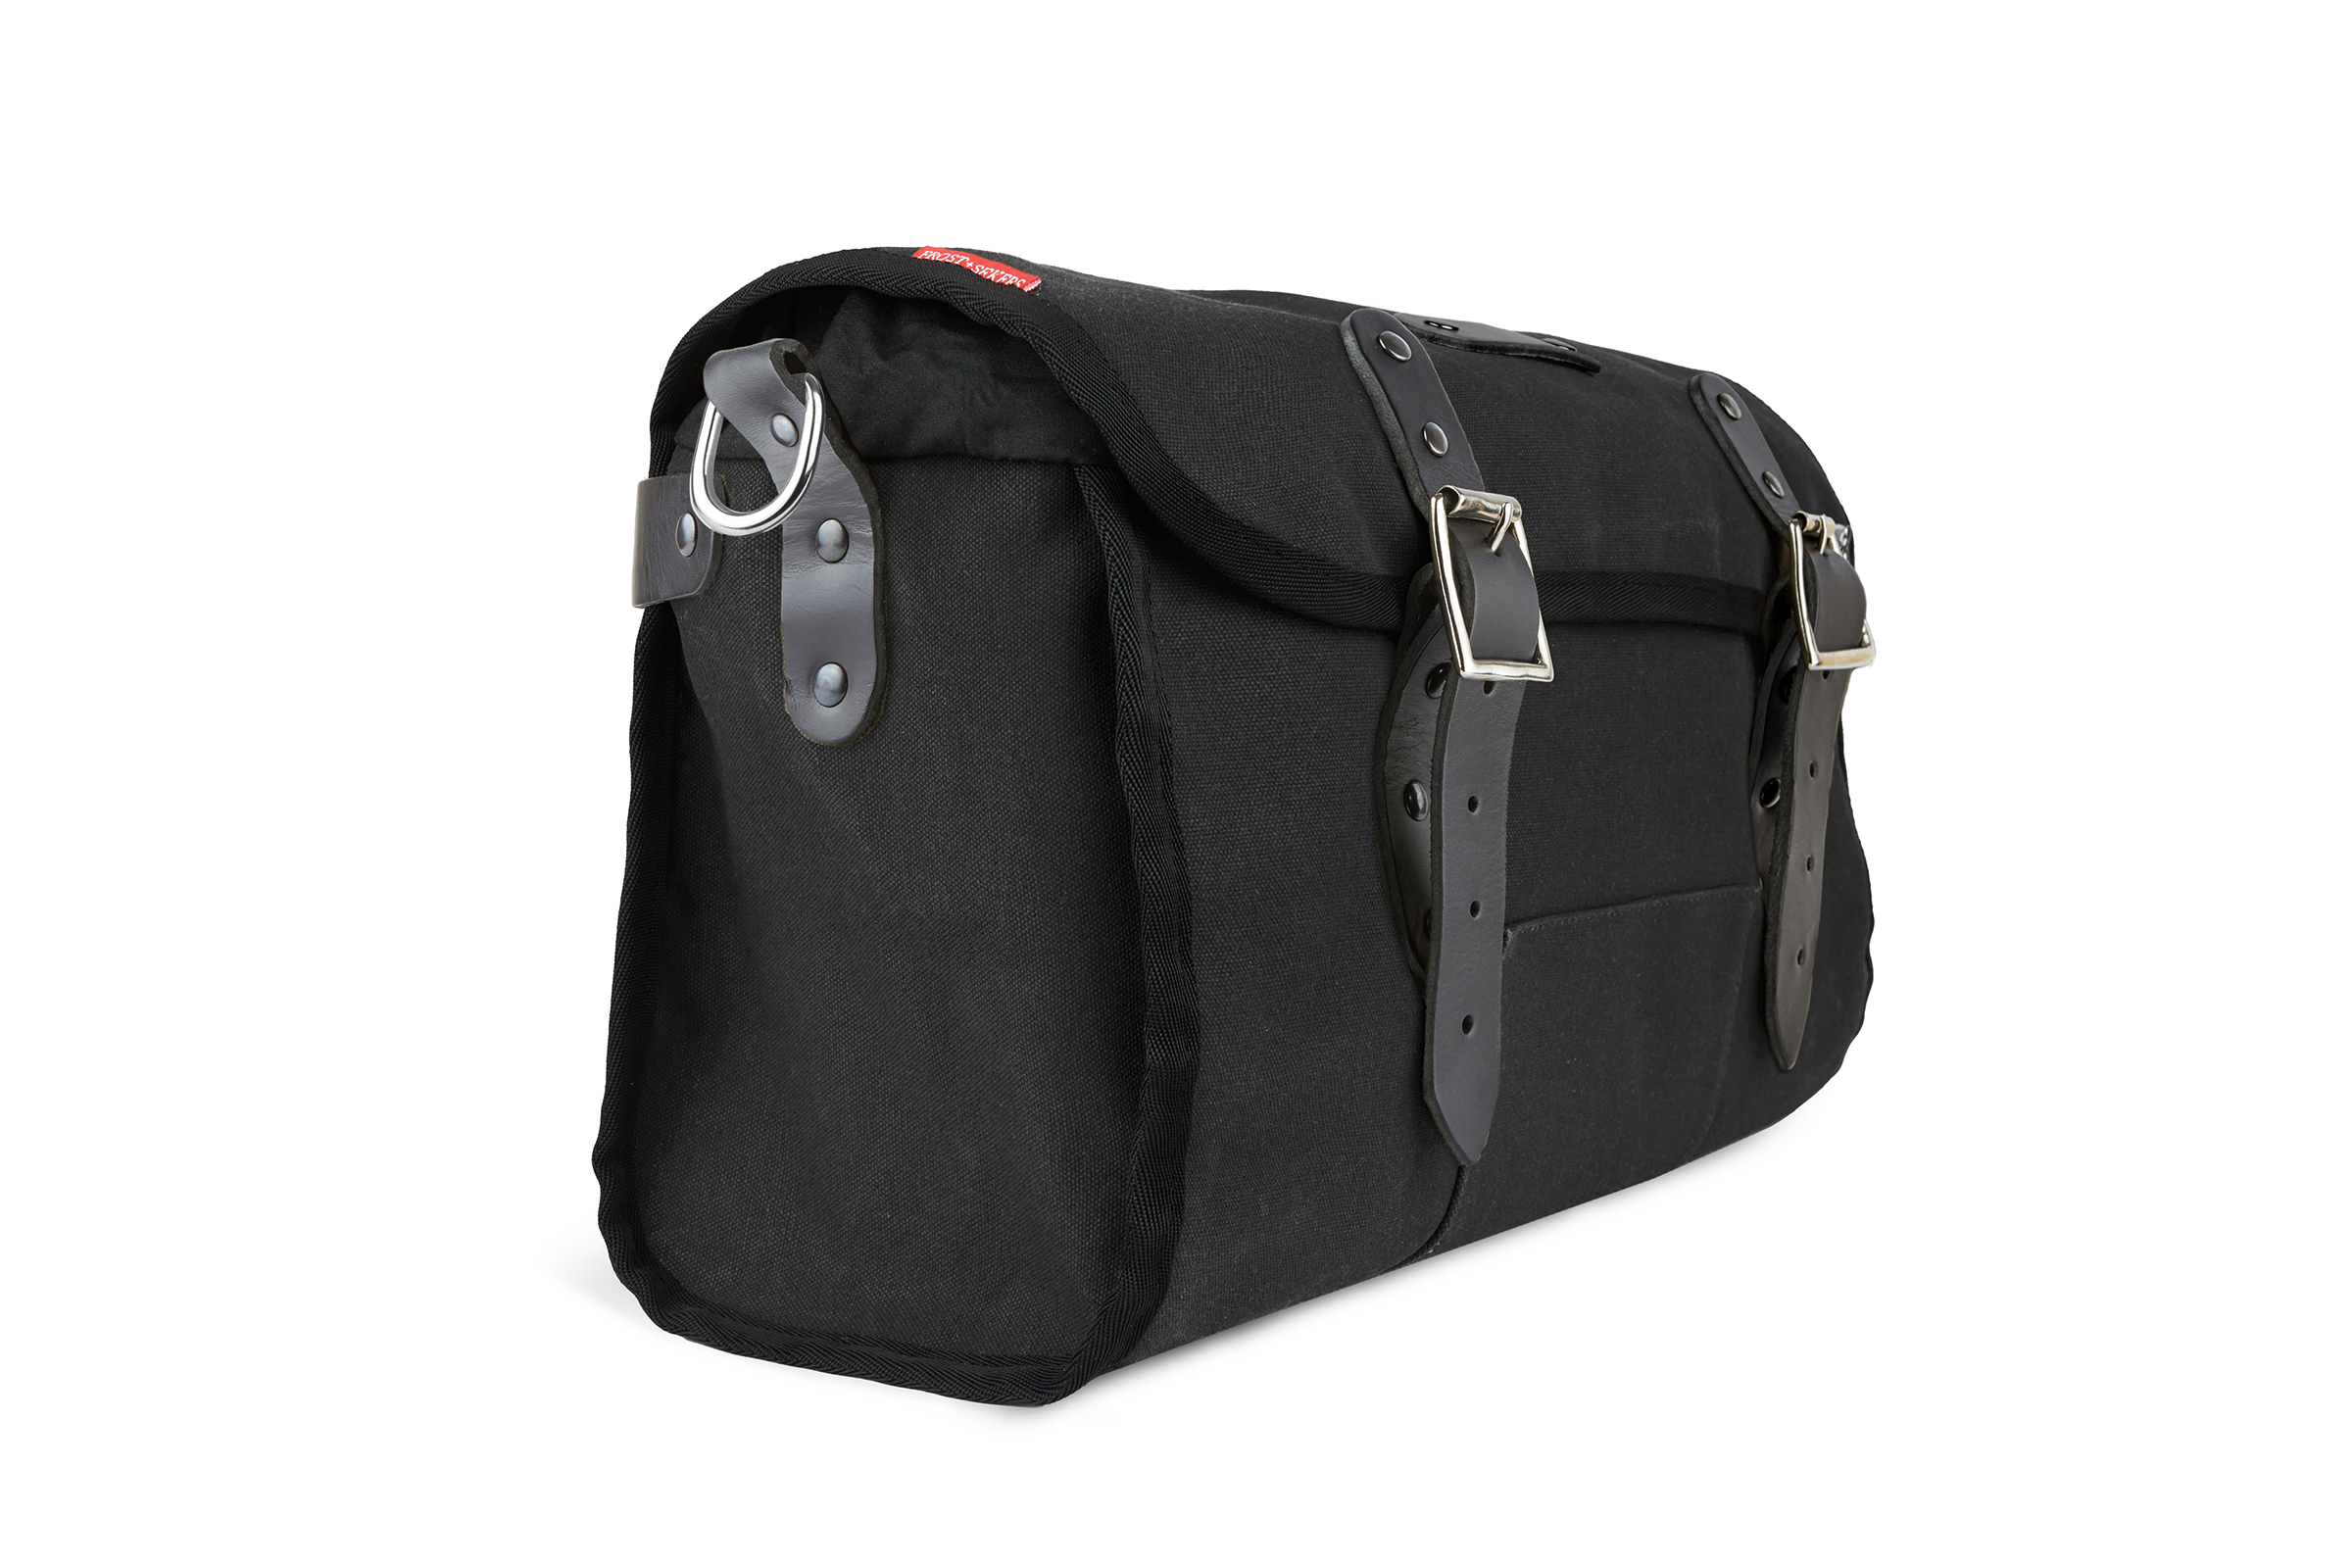 The Otis, 16L, Saddle Bag - Black Canvas, Black Leather